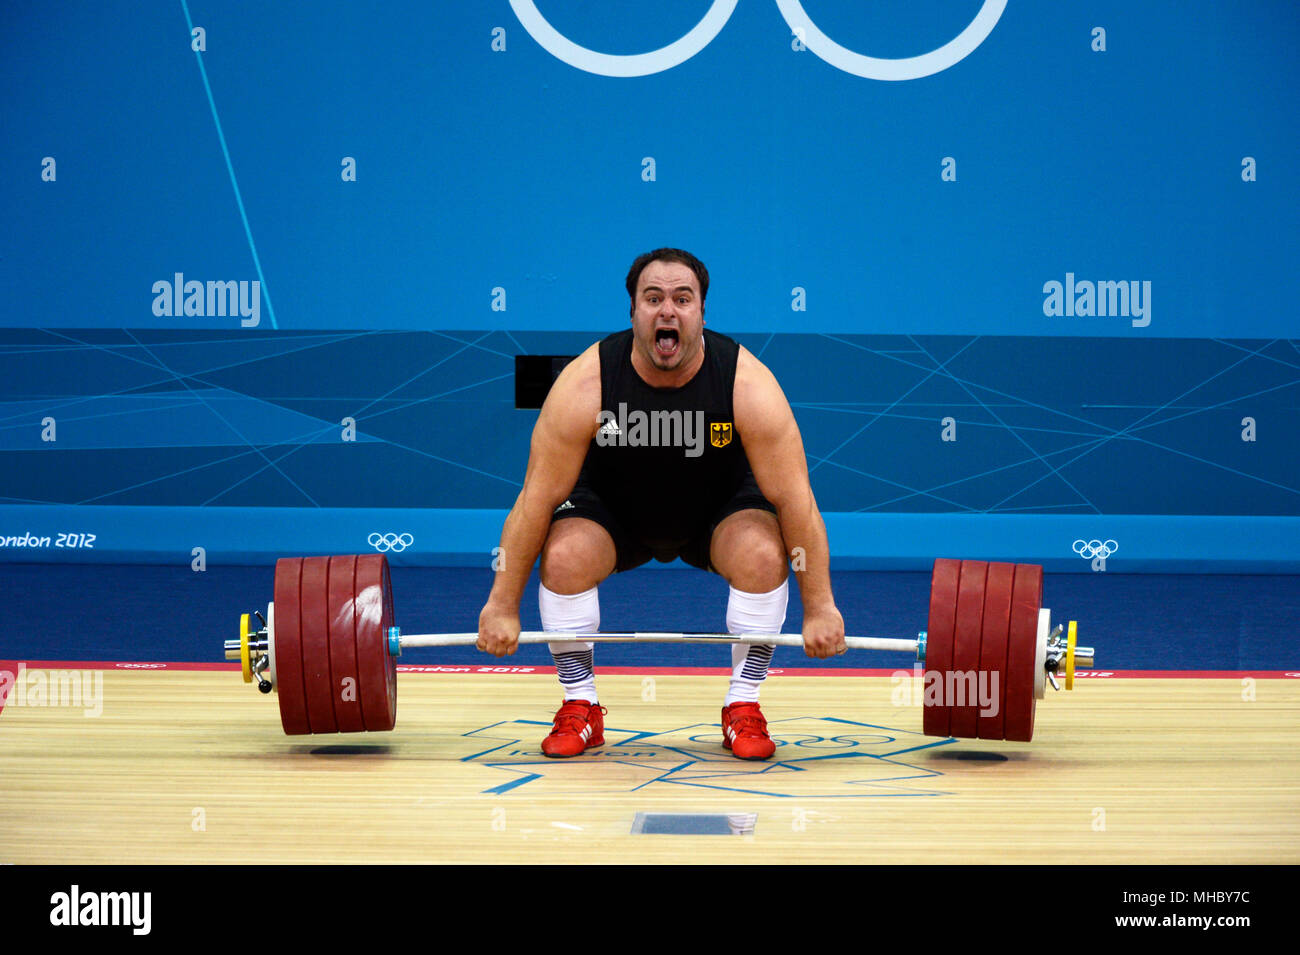 London 2012  - Olympics:  Almir Velagic of Germany attempting a lift in the Men's +105kg Weightlifting Competition. - Stock Image